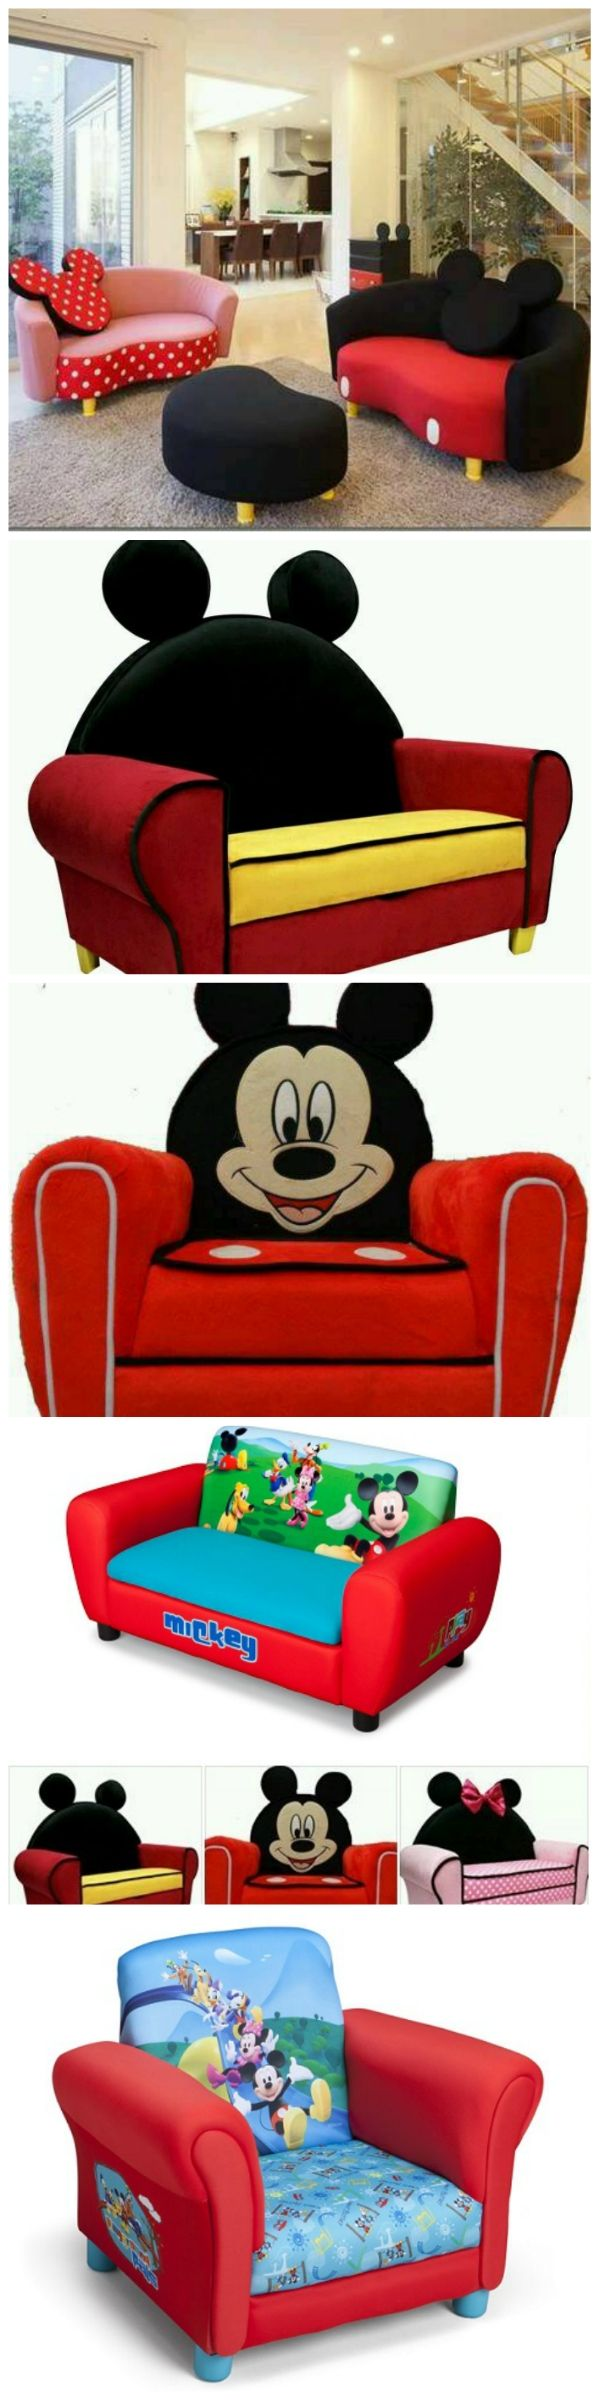 Delicieux Awesome Mickey Mouse Sofa